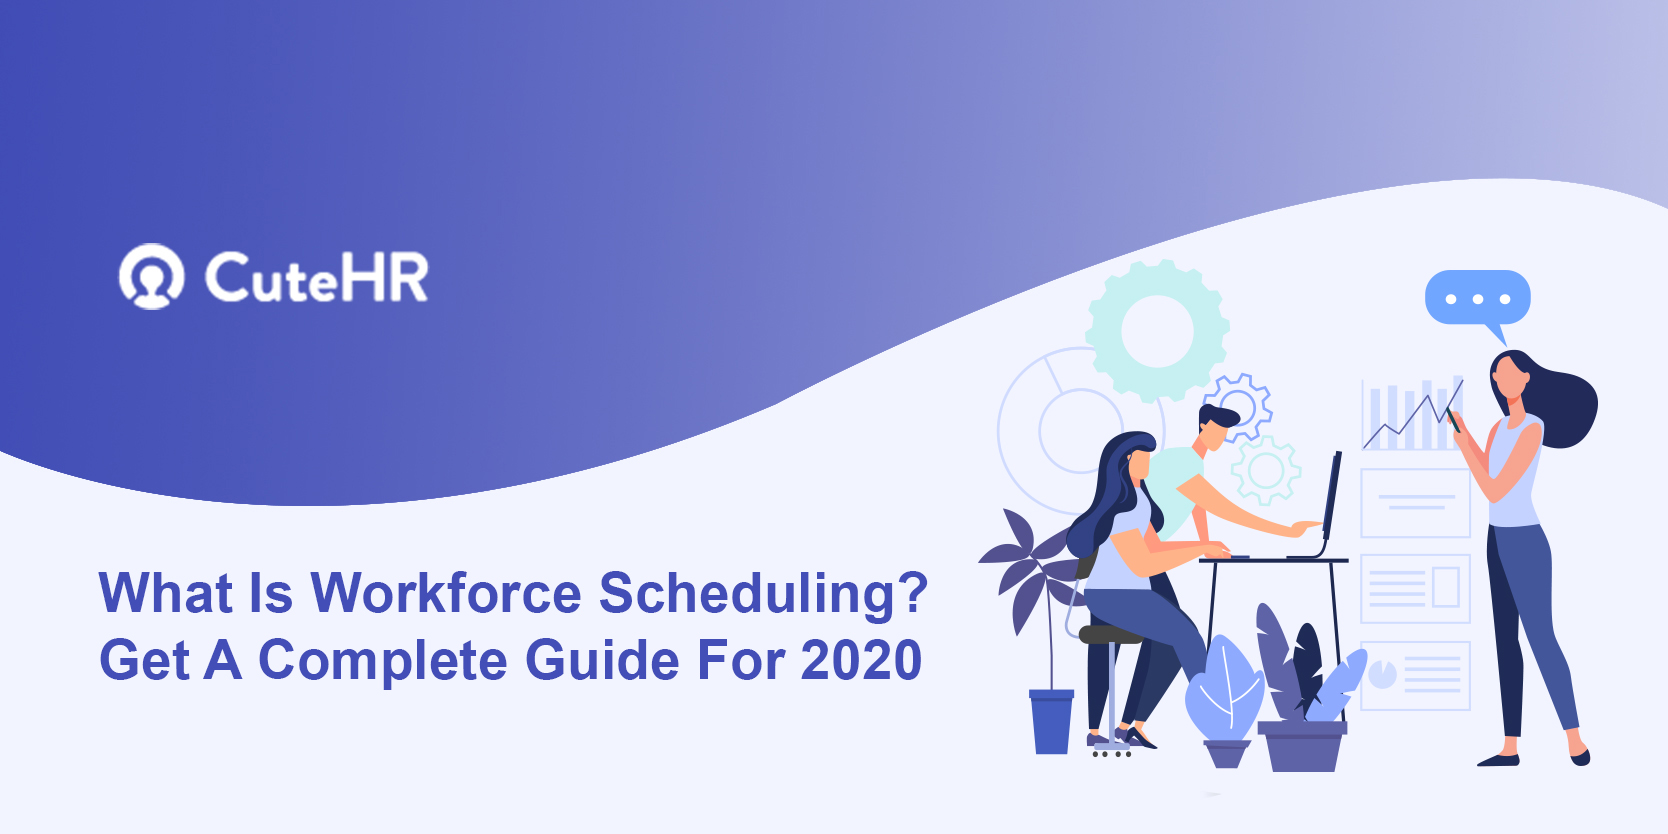 Workforce Scheduling. Get A Complete Guide